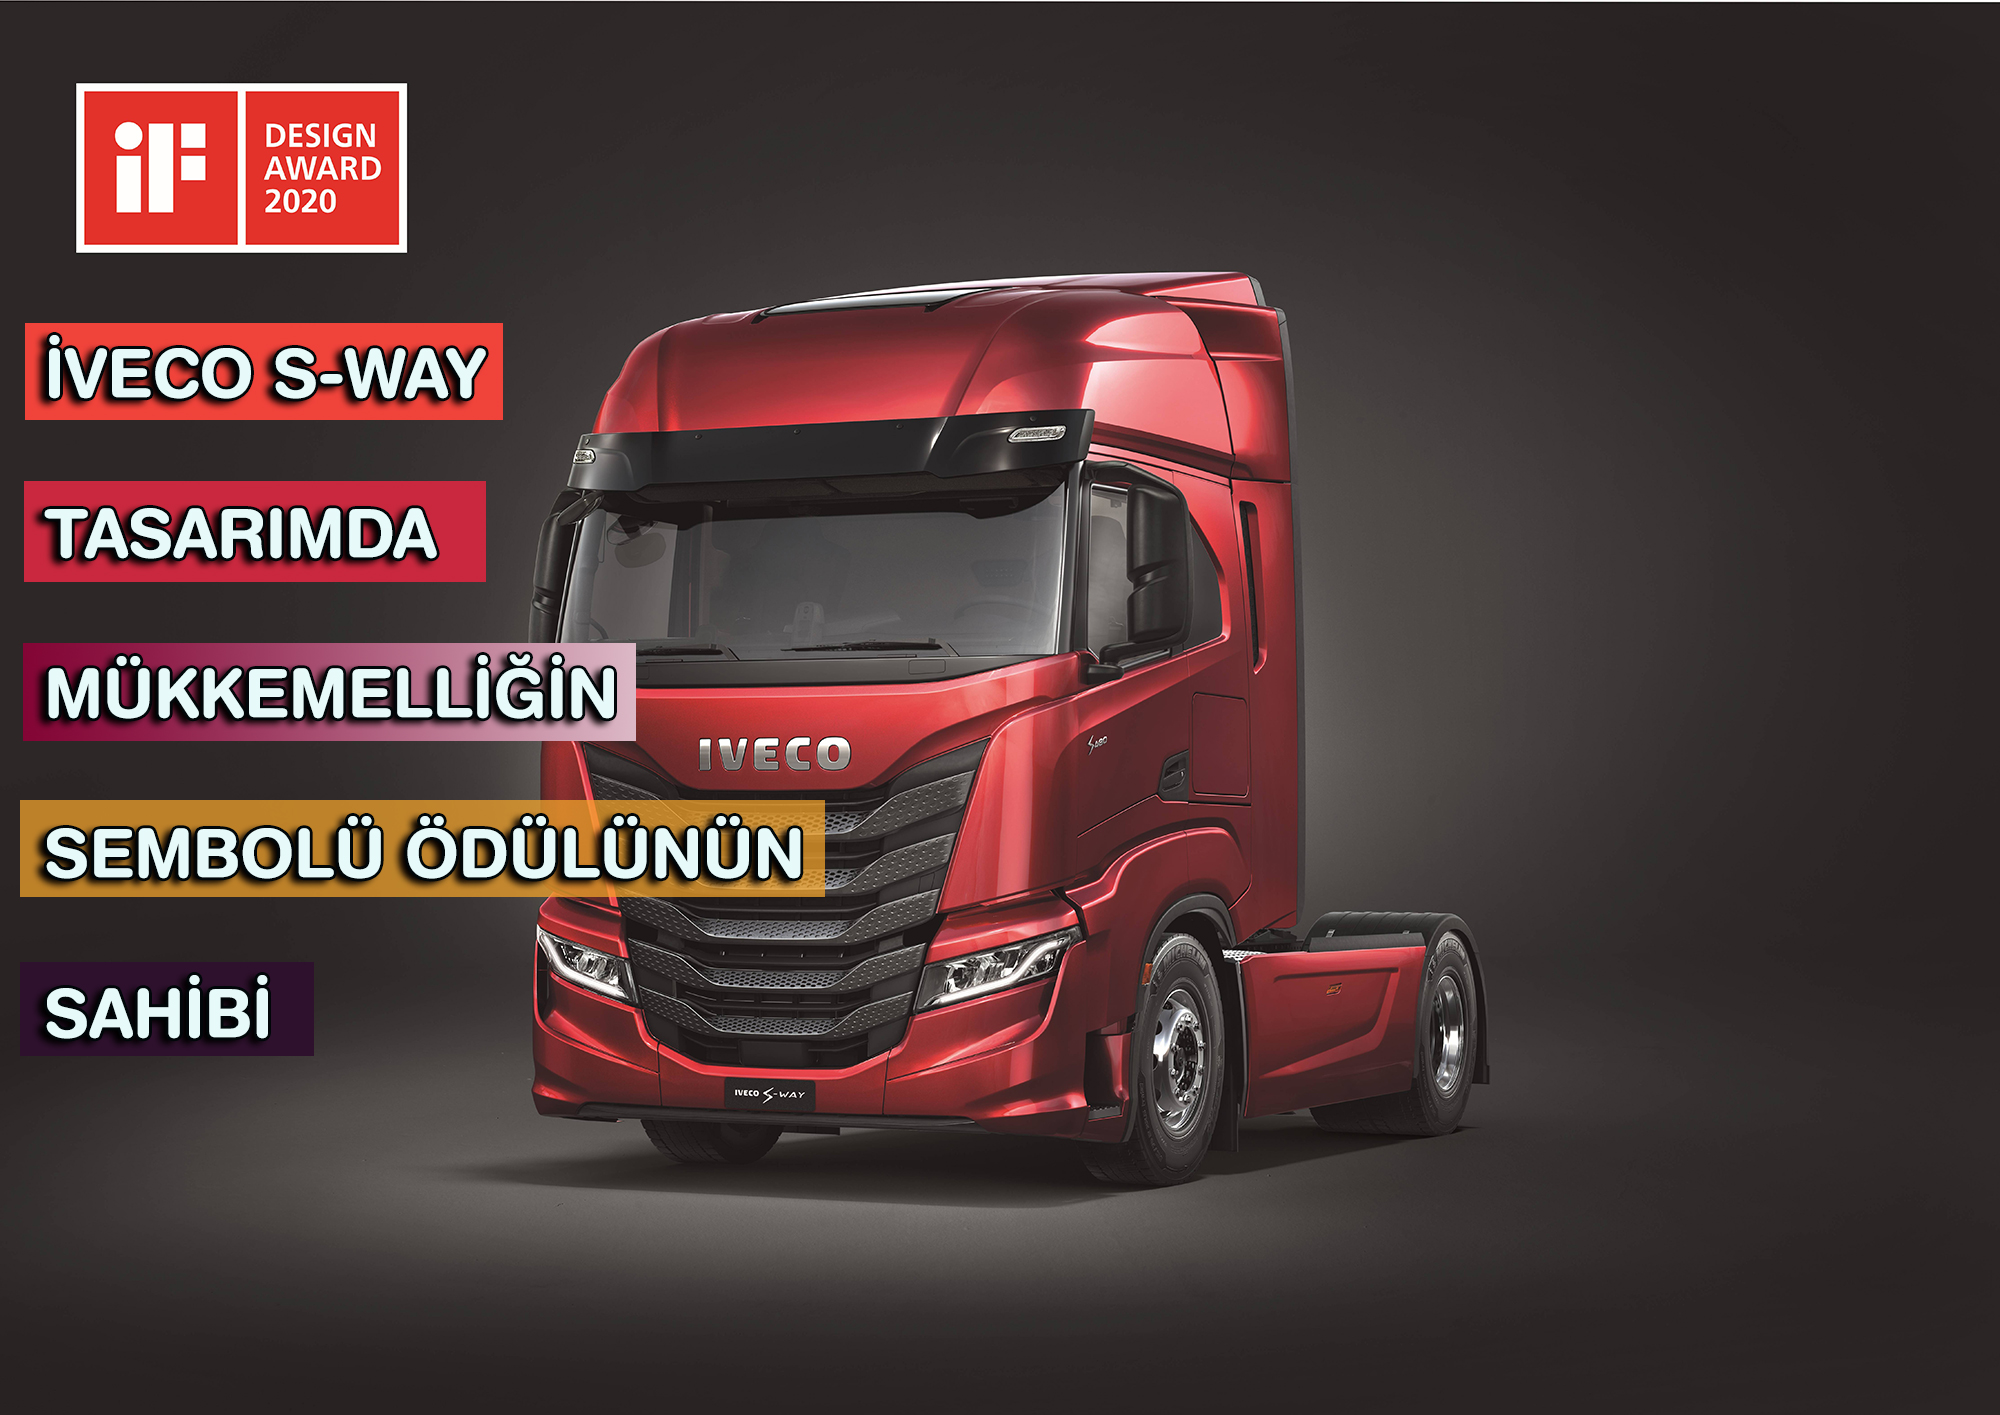 iveco-s-way-if-design-award_.jpg